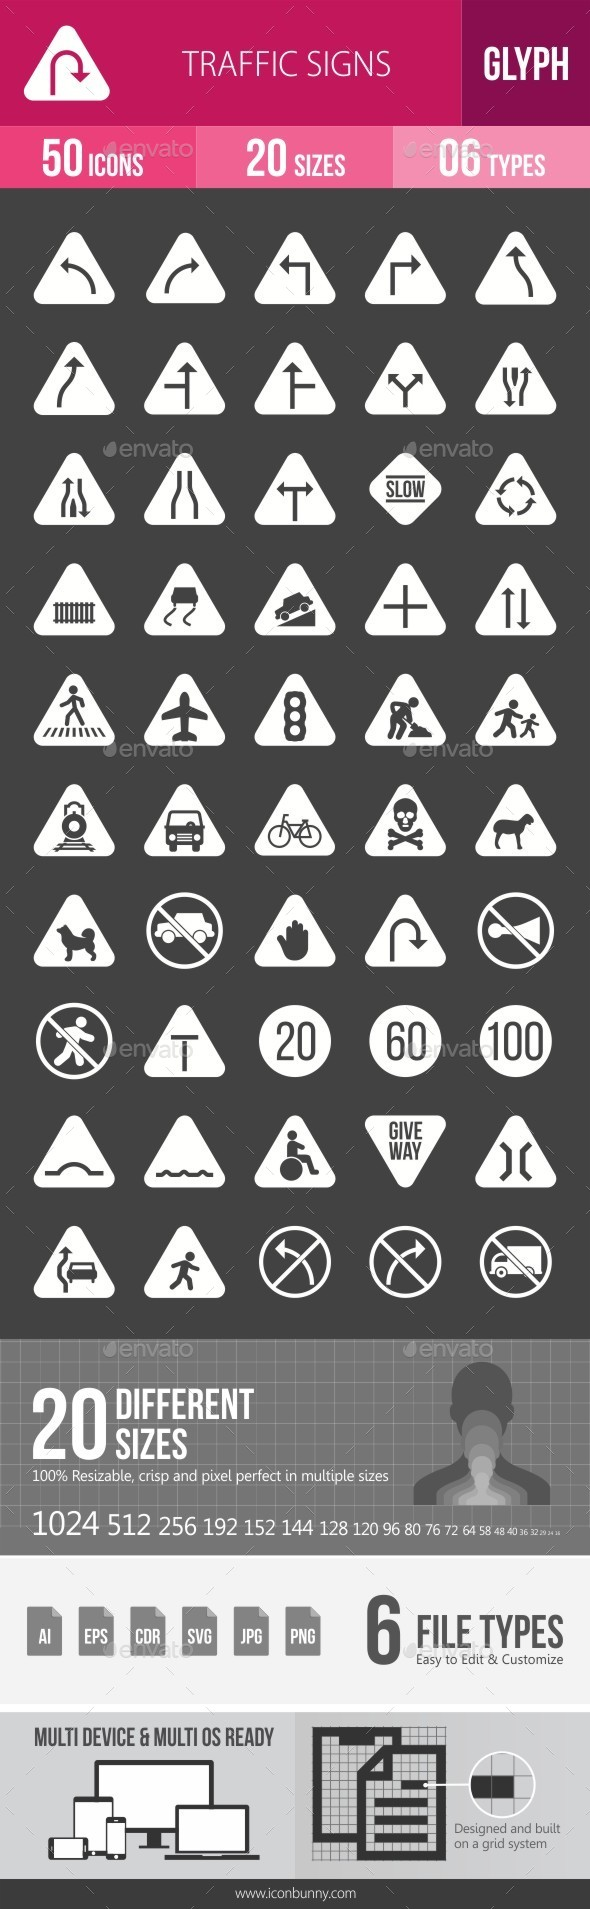 Traffic Signs Glyph Inverted Icons - Icons